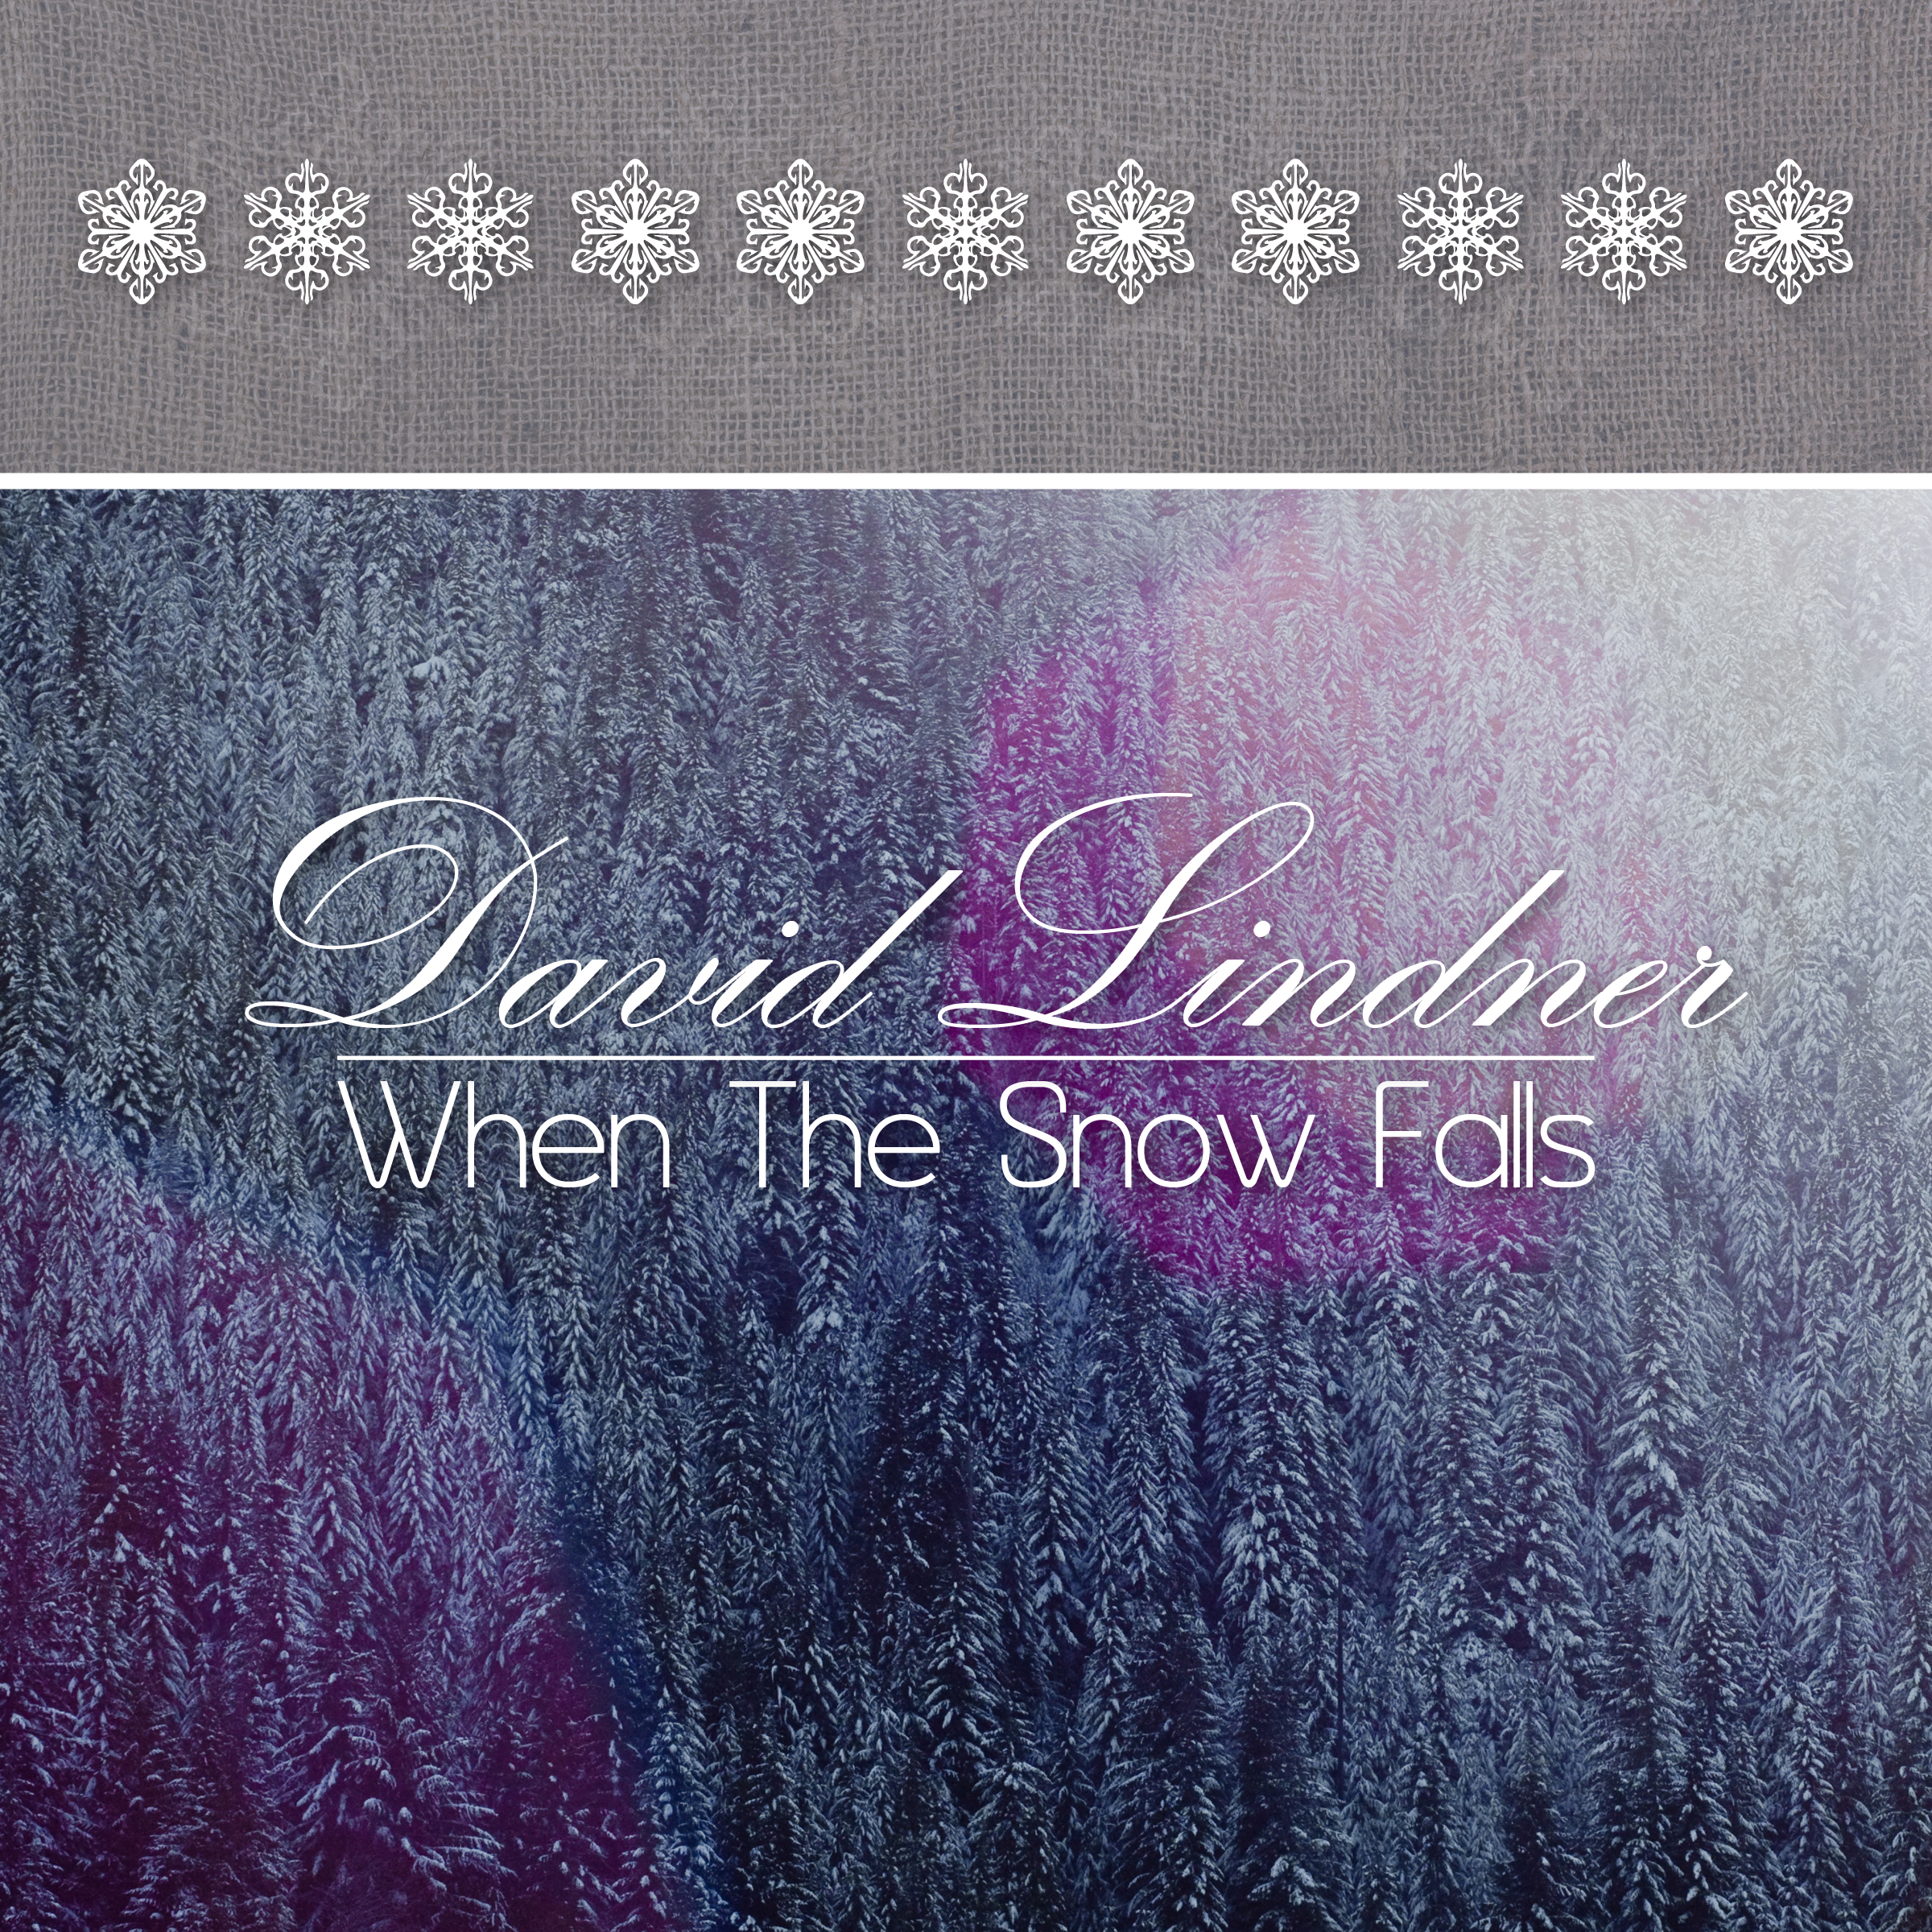 When The Snow Falls – A Full Length Christmas Album by David Lindner